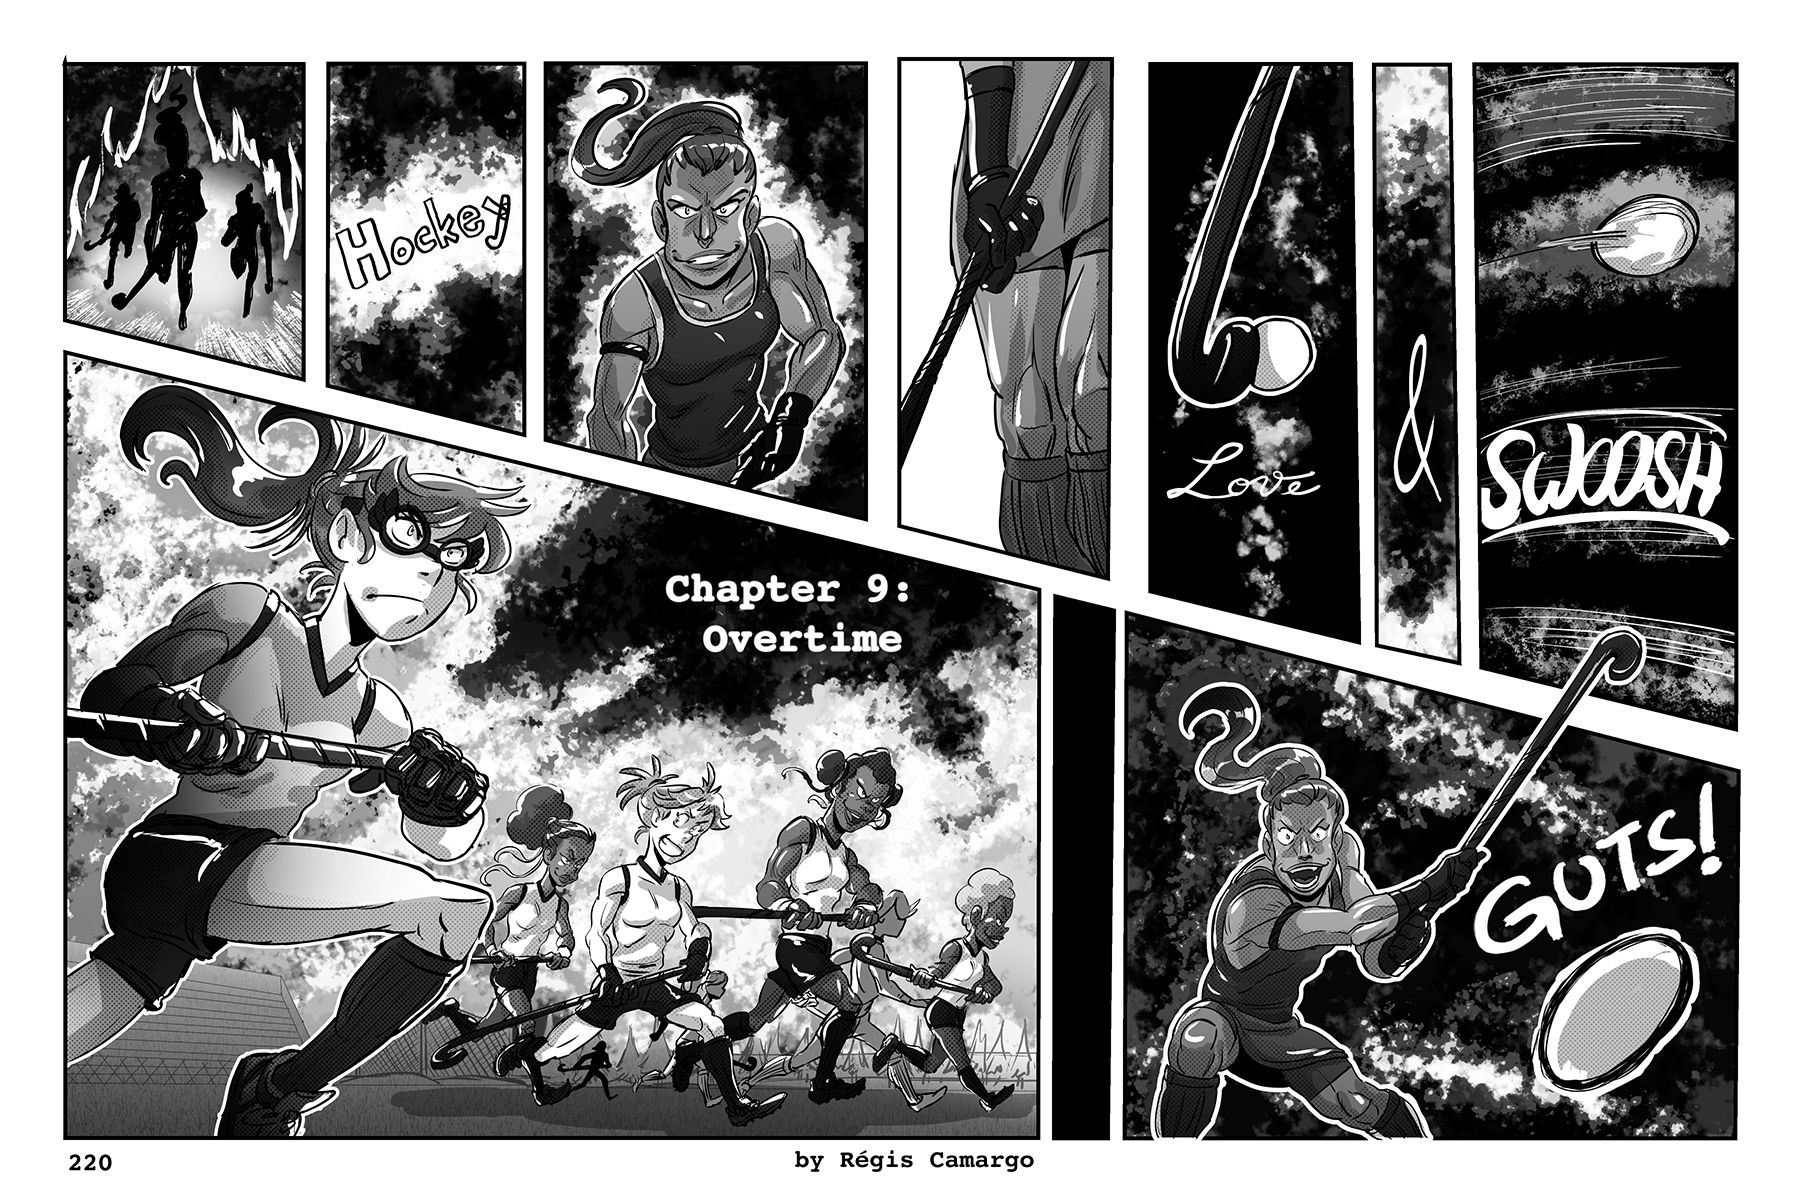 Hockey, Love, & GUTS! – Chapter 9 – Page 220